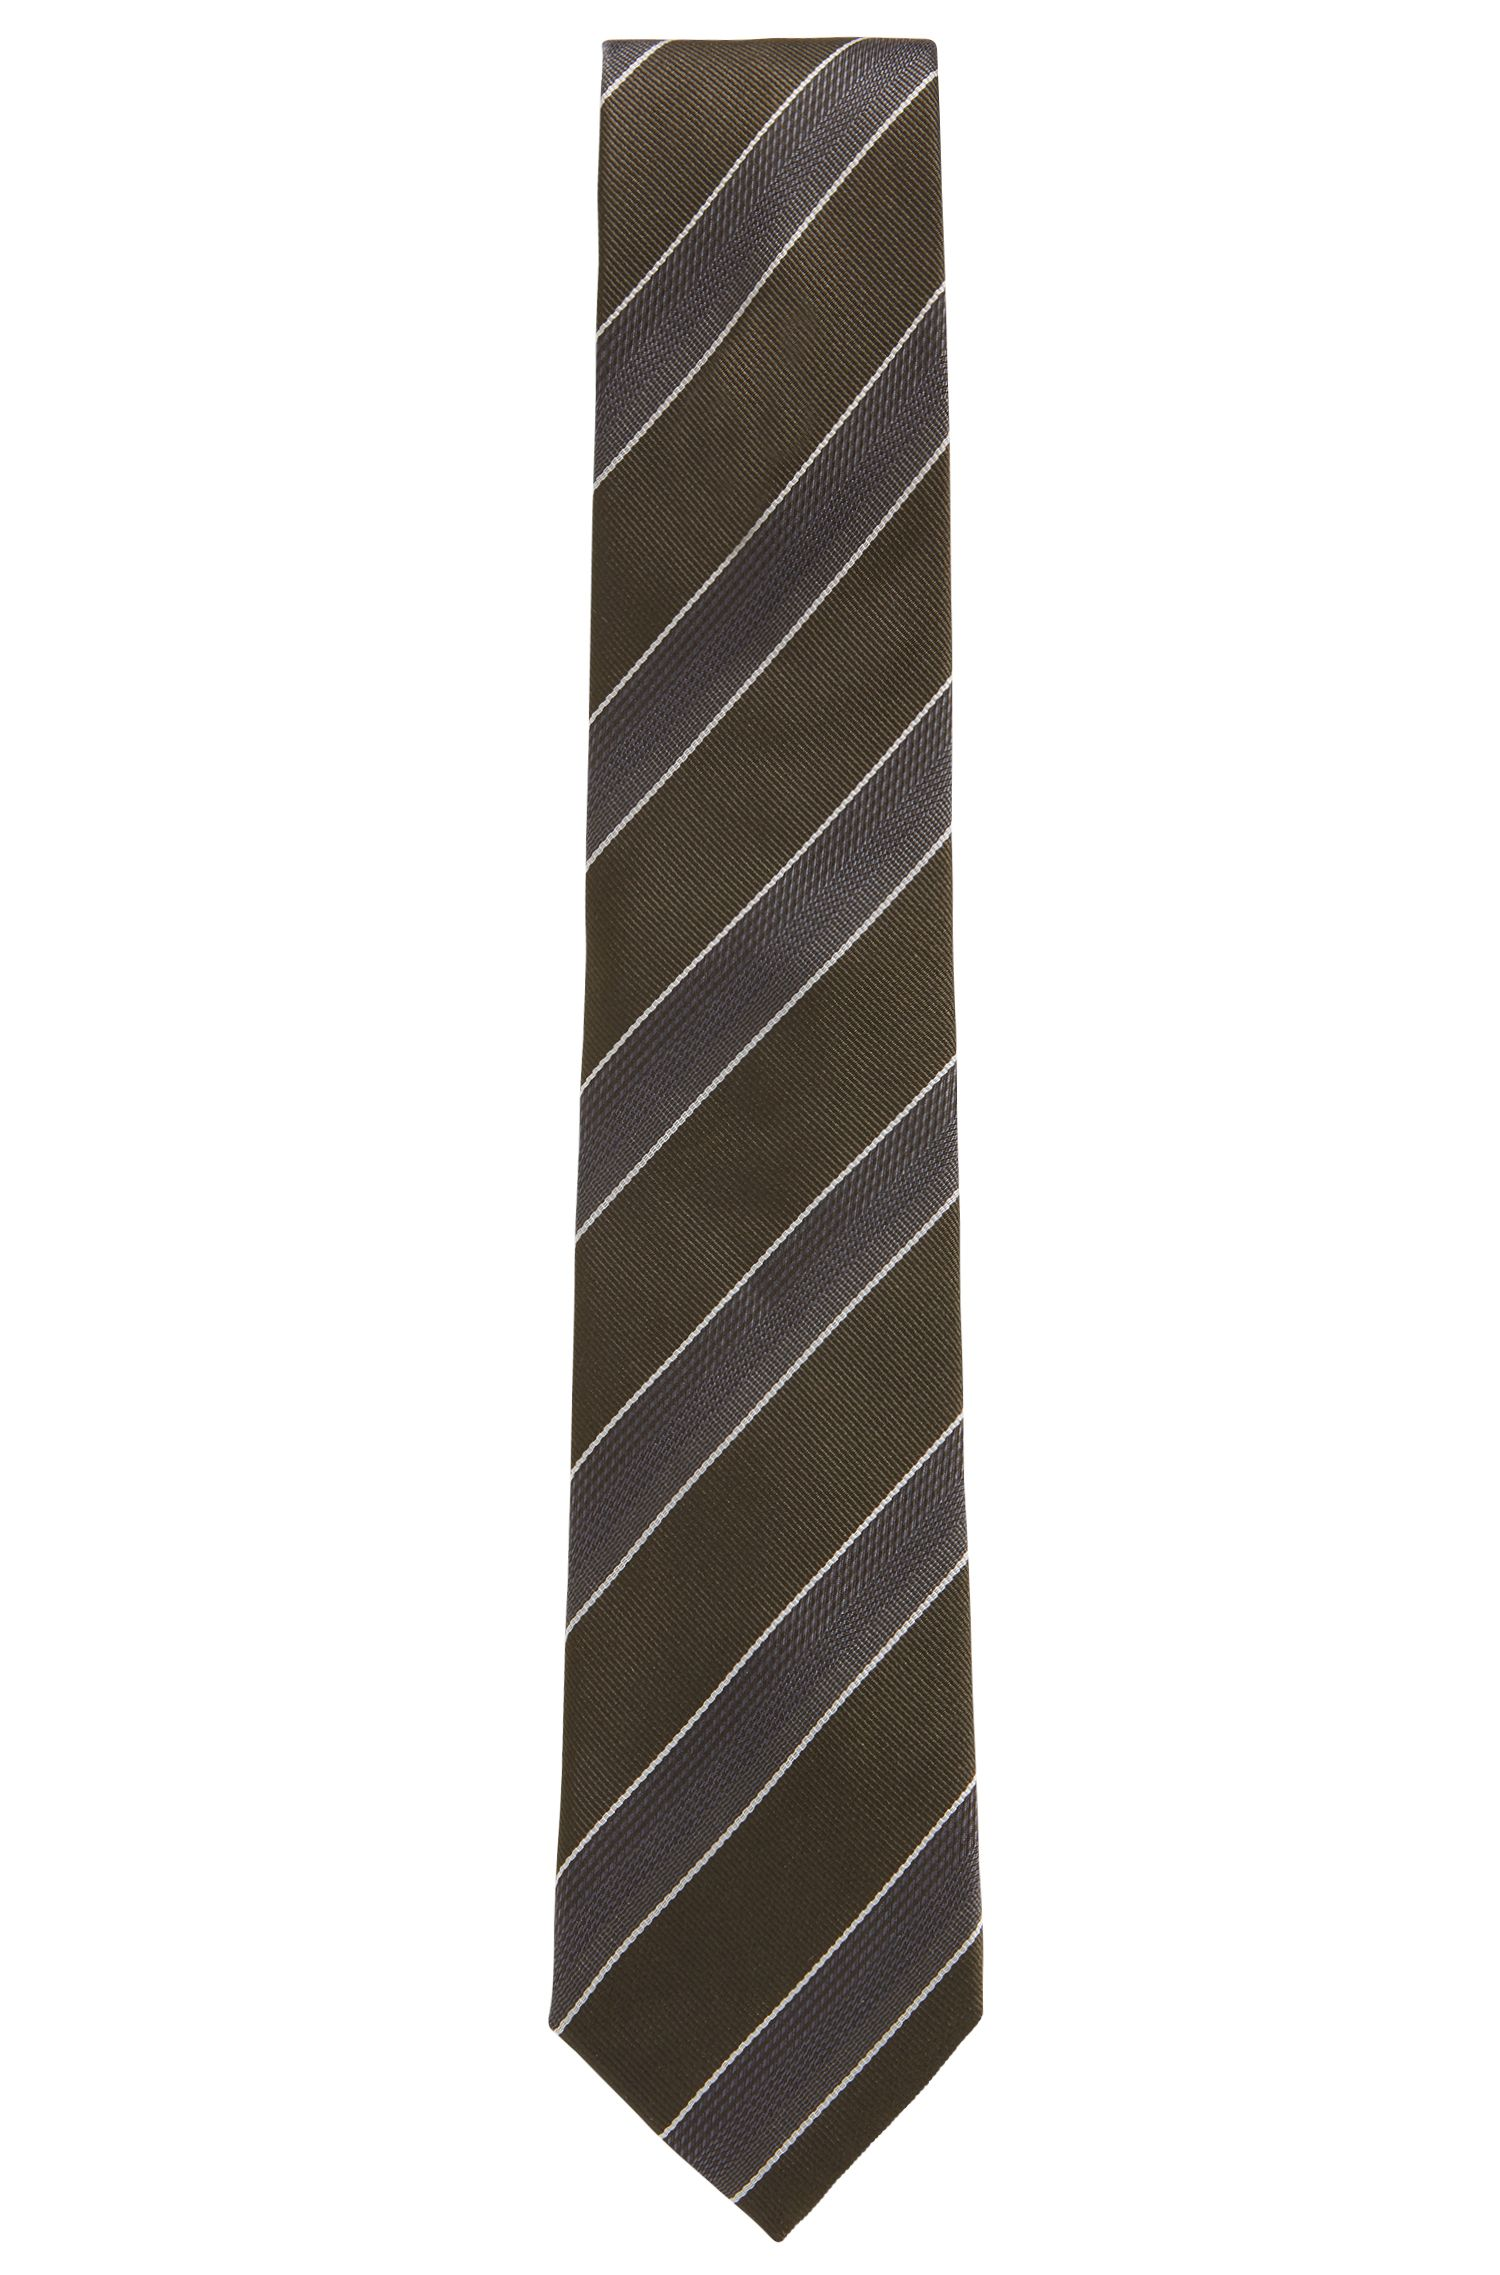 Silk jacquard tie in textured diagonal stripes, Dark Green